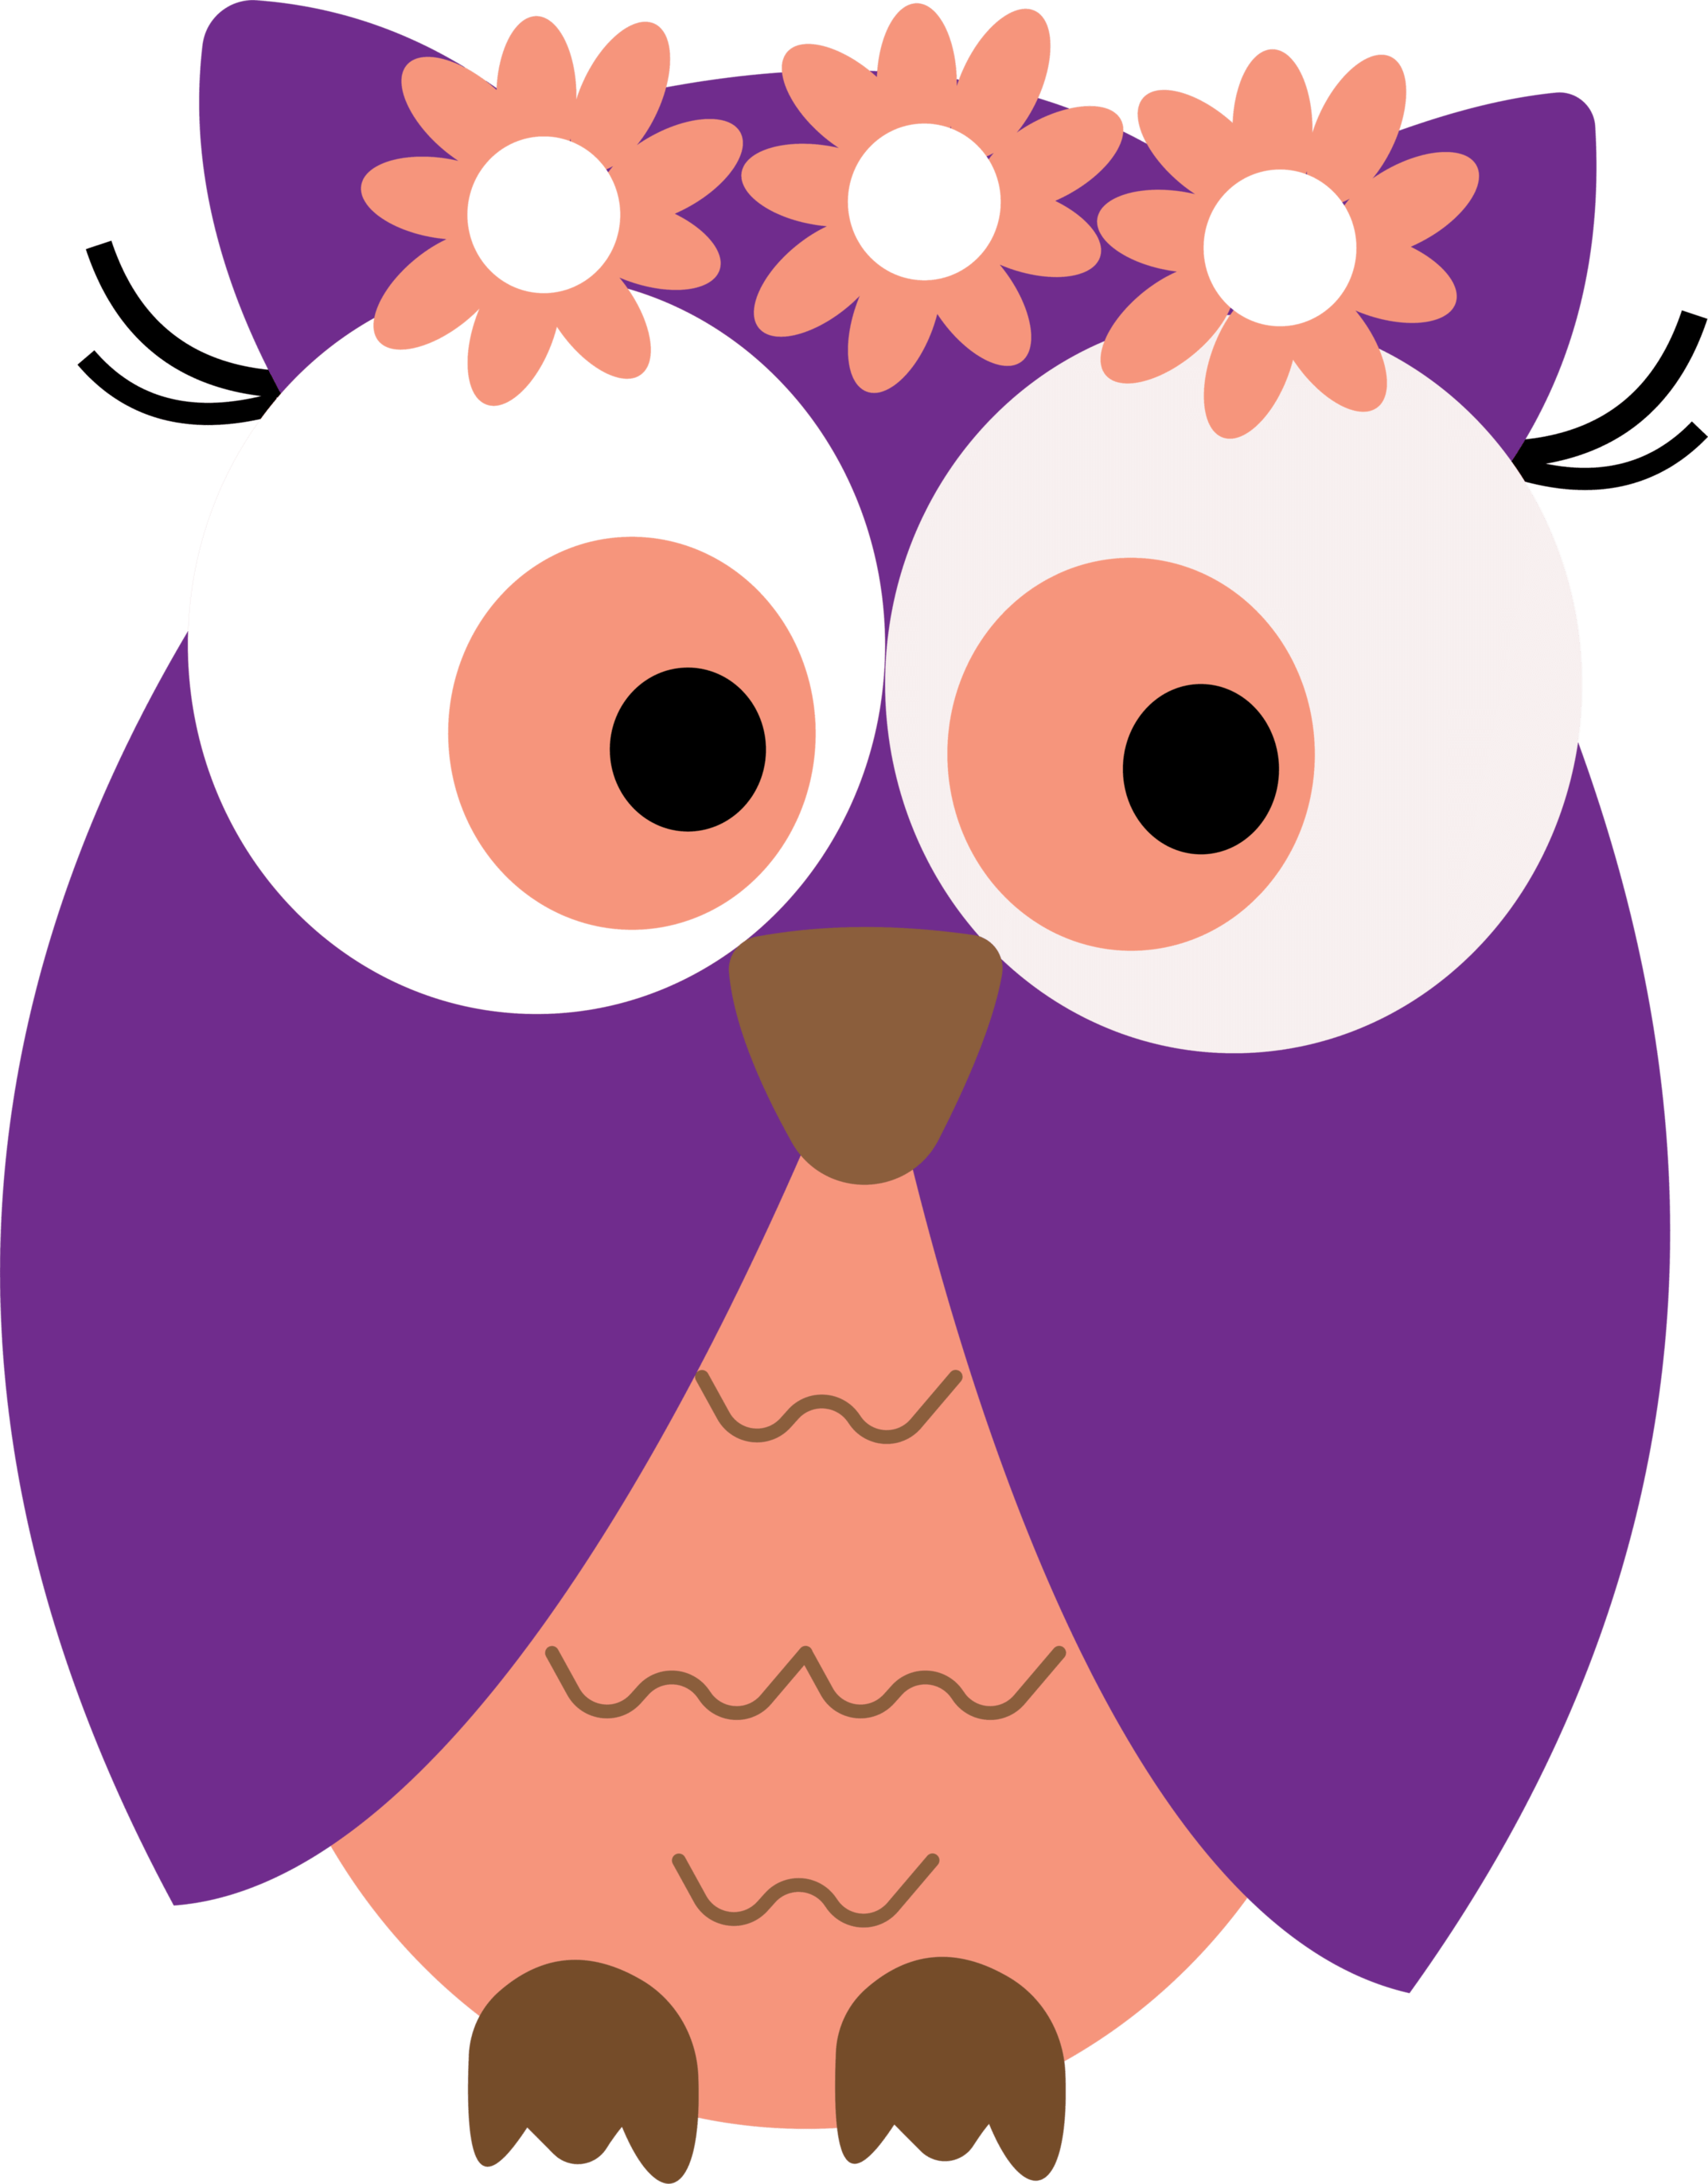 Cute owl halloween clipart graphic transparent download CH B *✿* Graduation Owls Owl Card Clipart Free Clip Art Images ... graphic transparent download